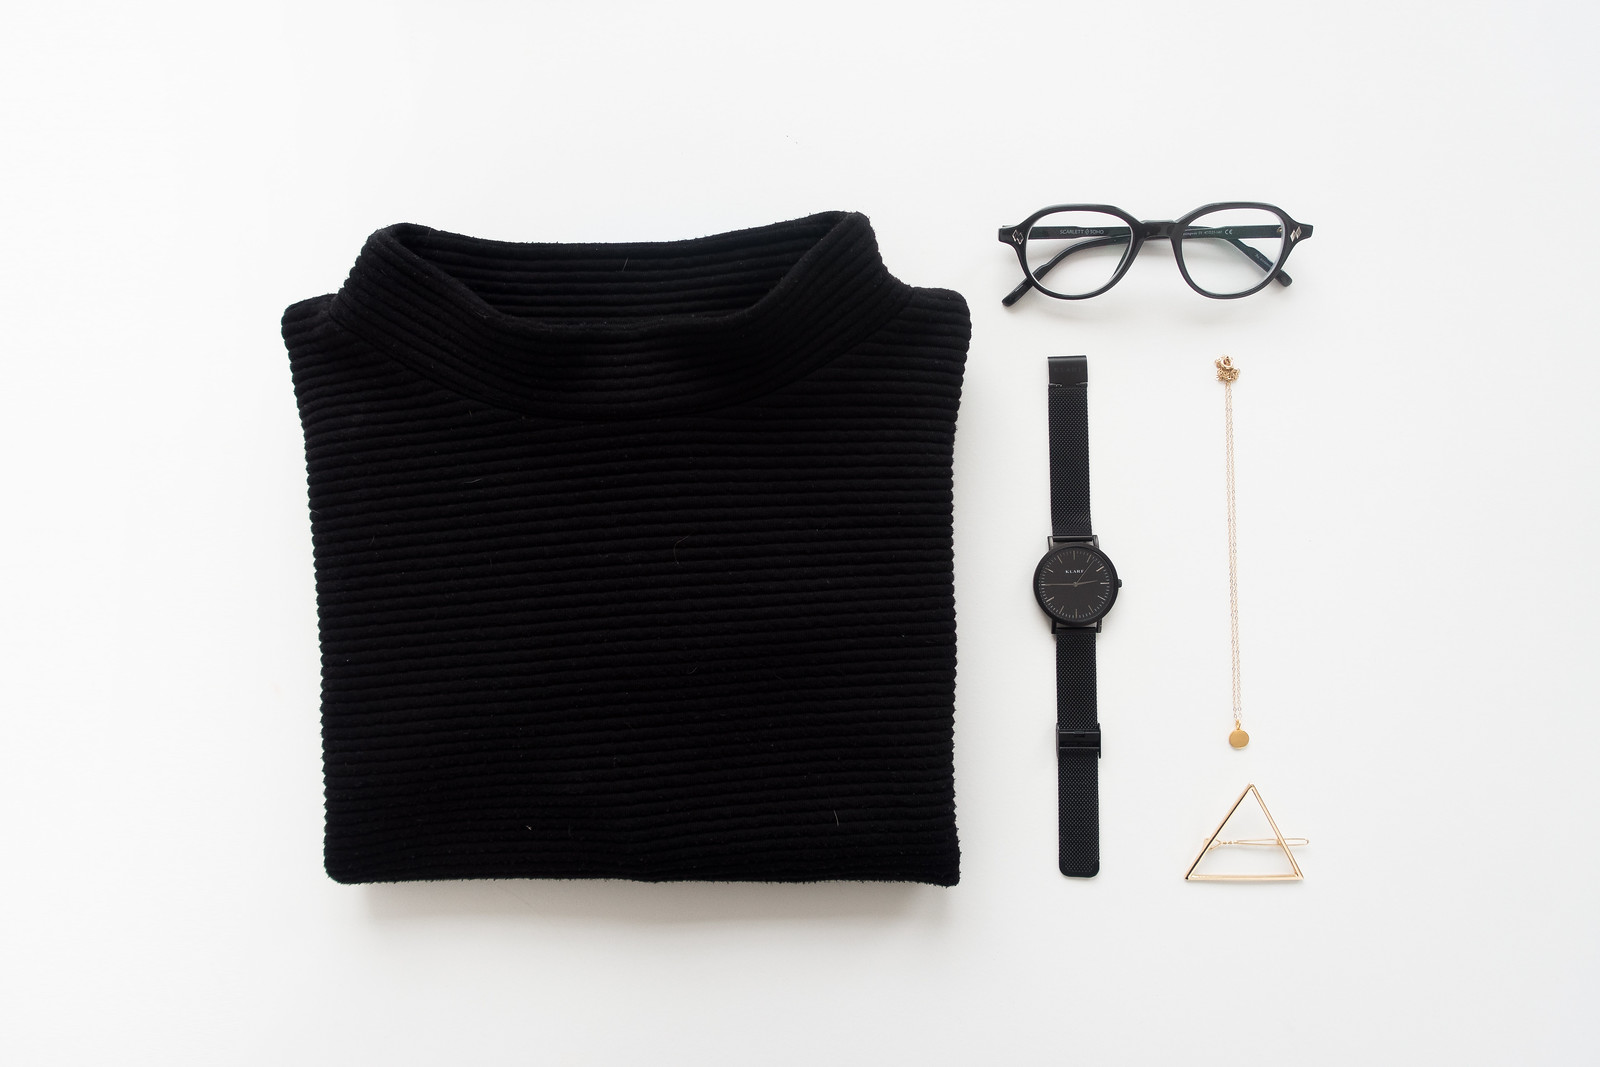 The Principles of Building a Minimal Wardrobe